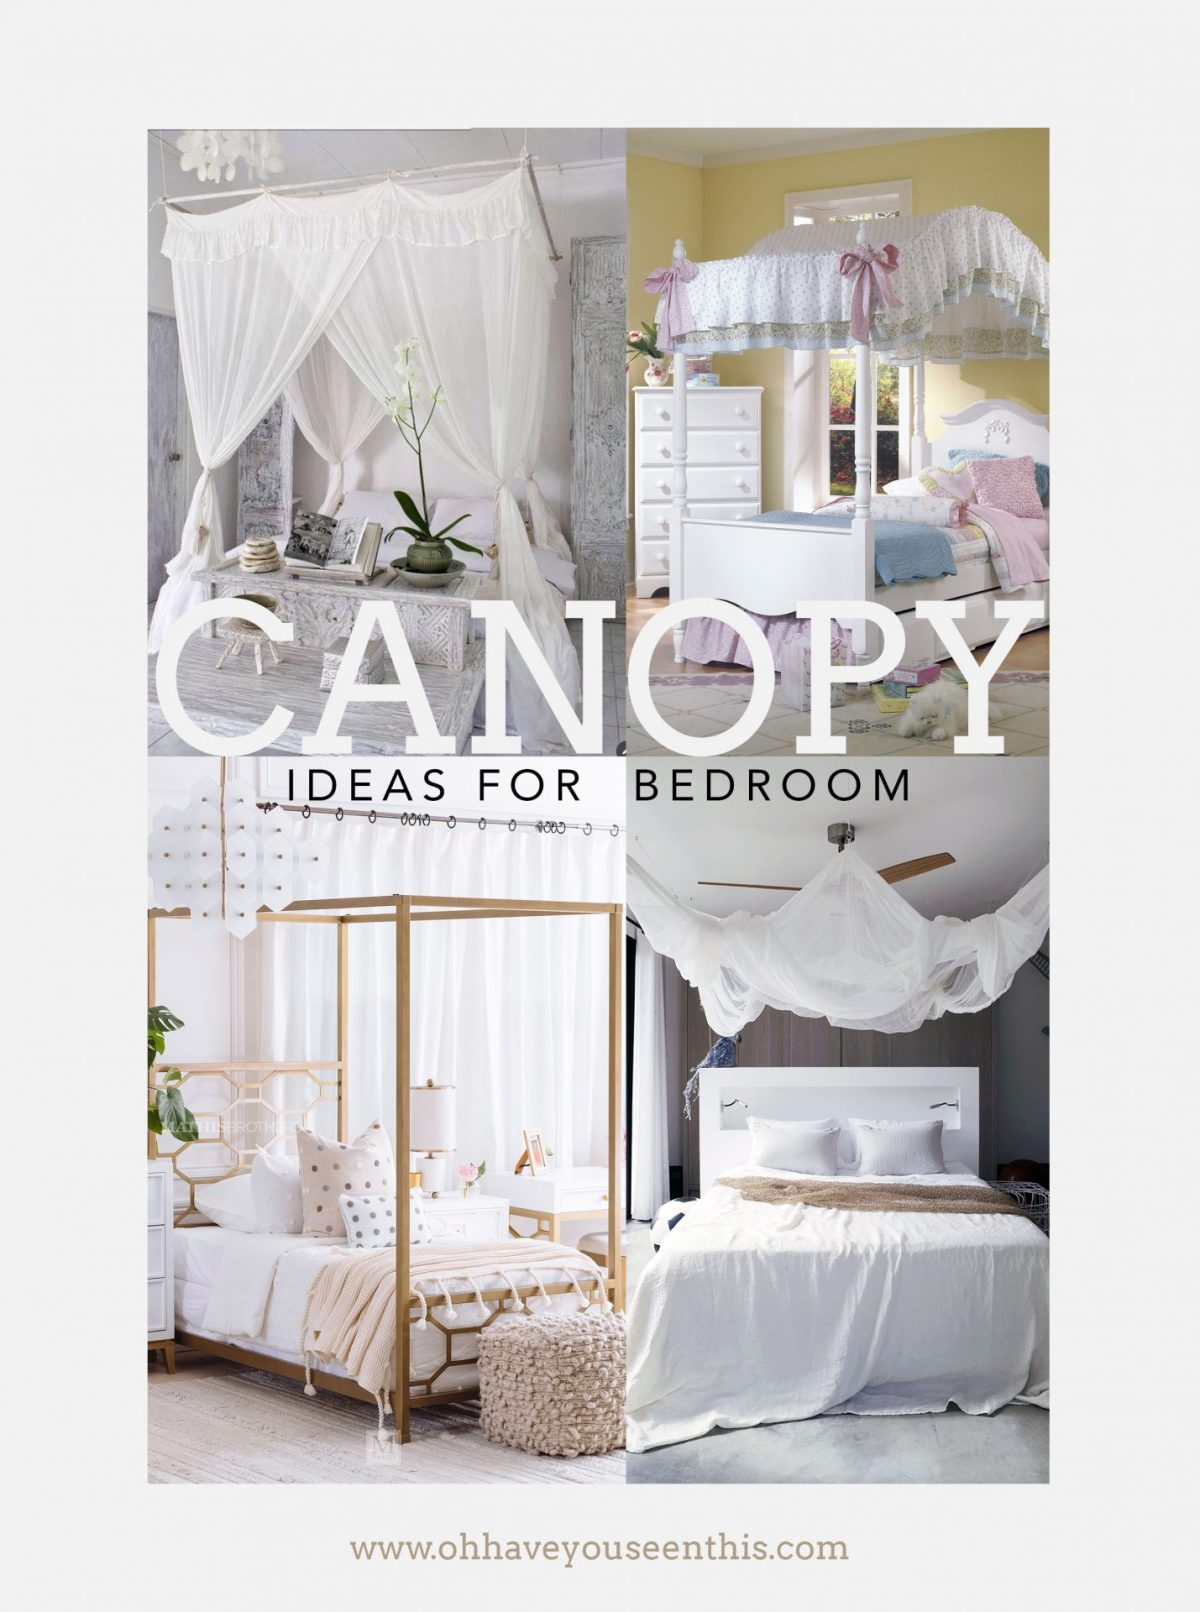 Canopy Ideas For Bedroom Cover